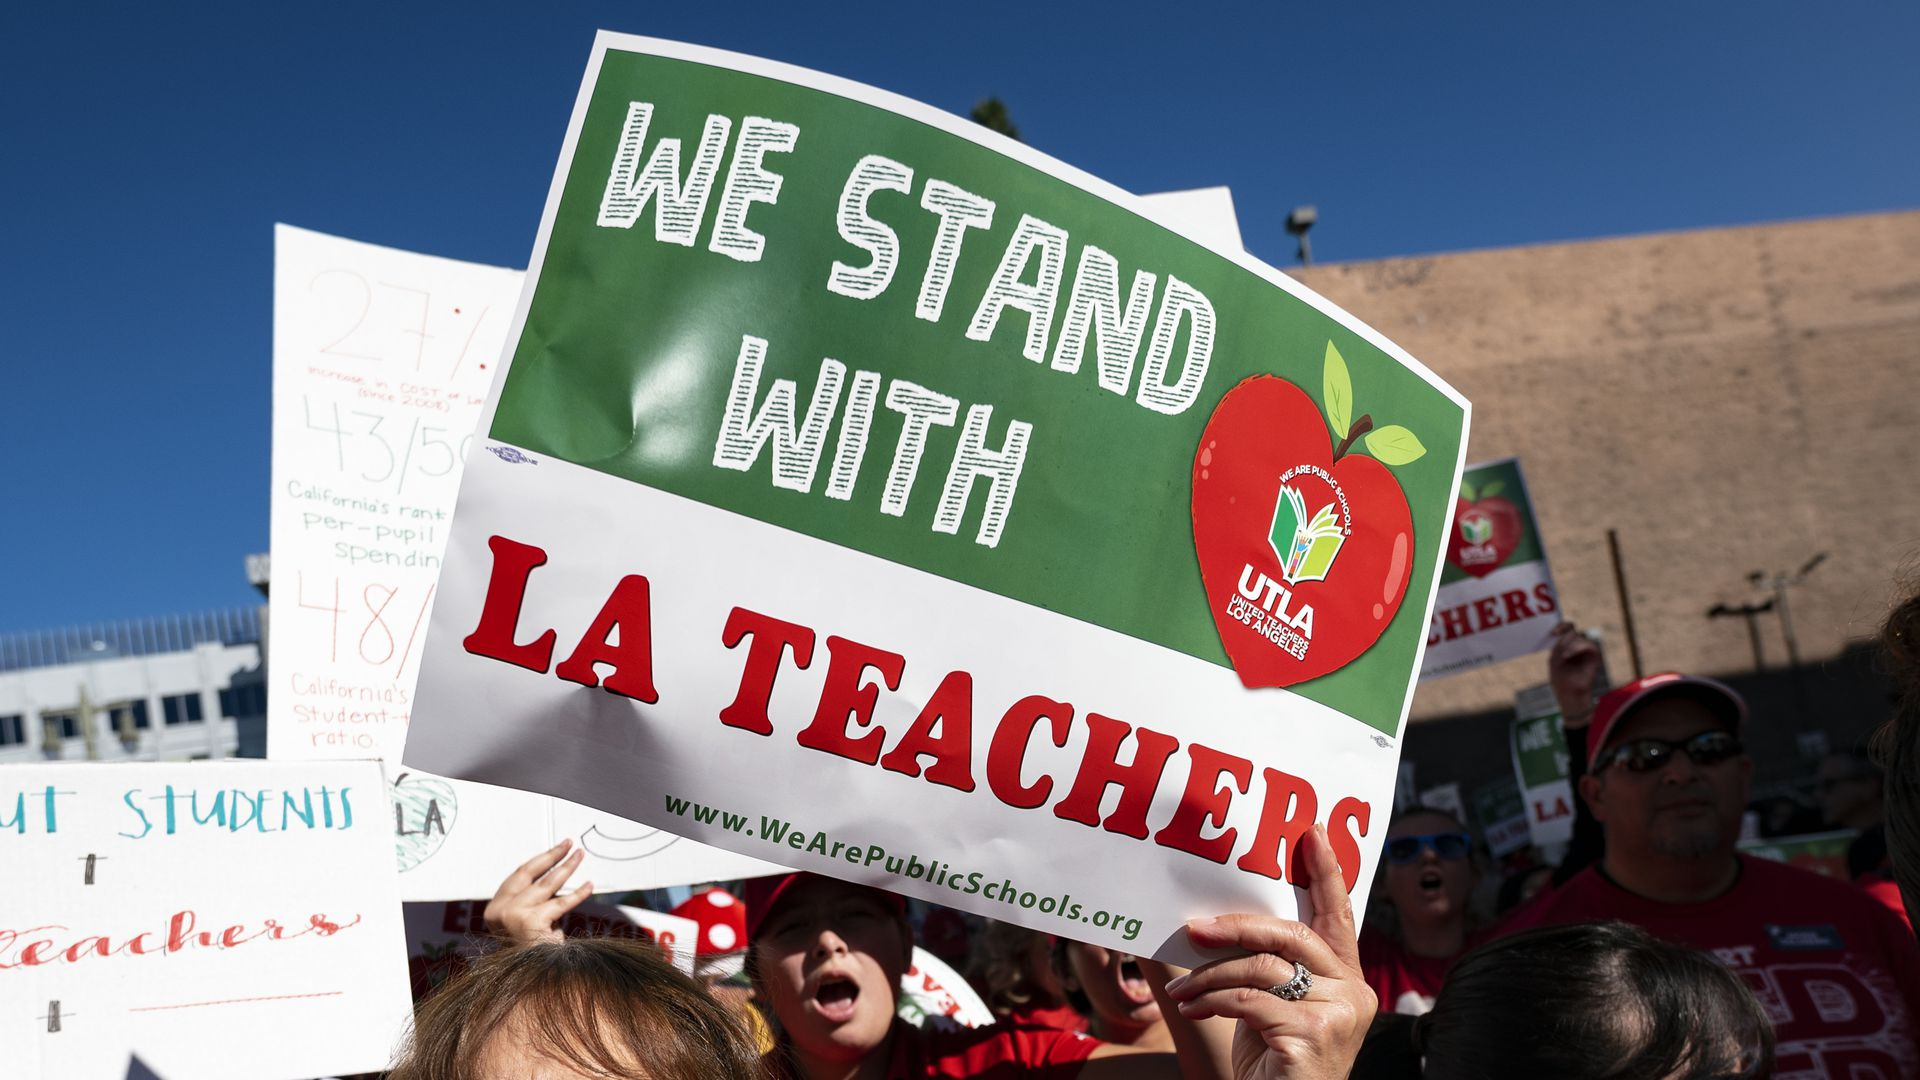 la_teachers_strike_3